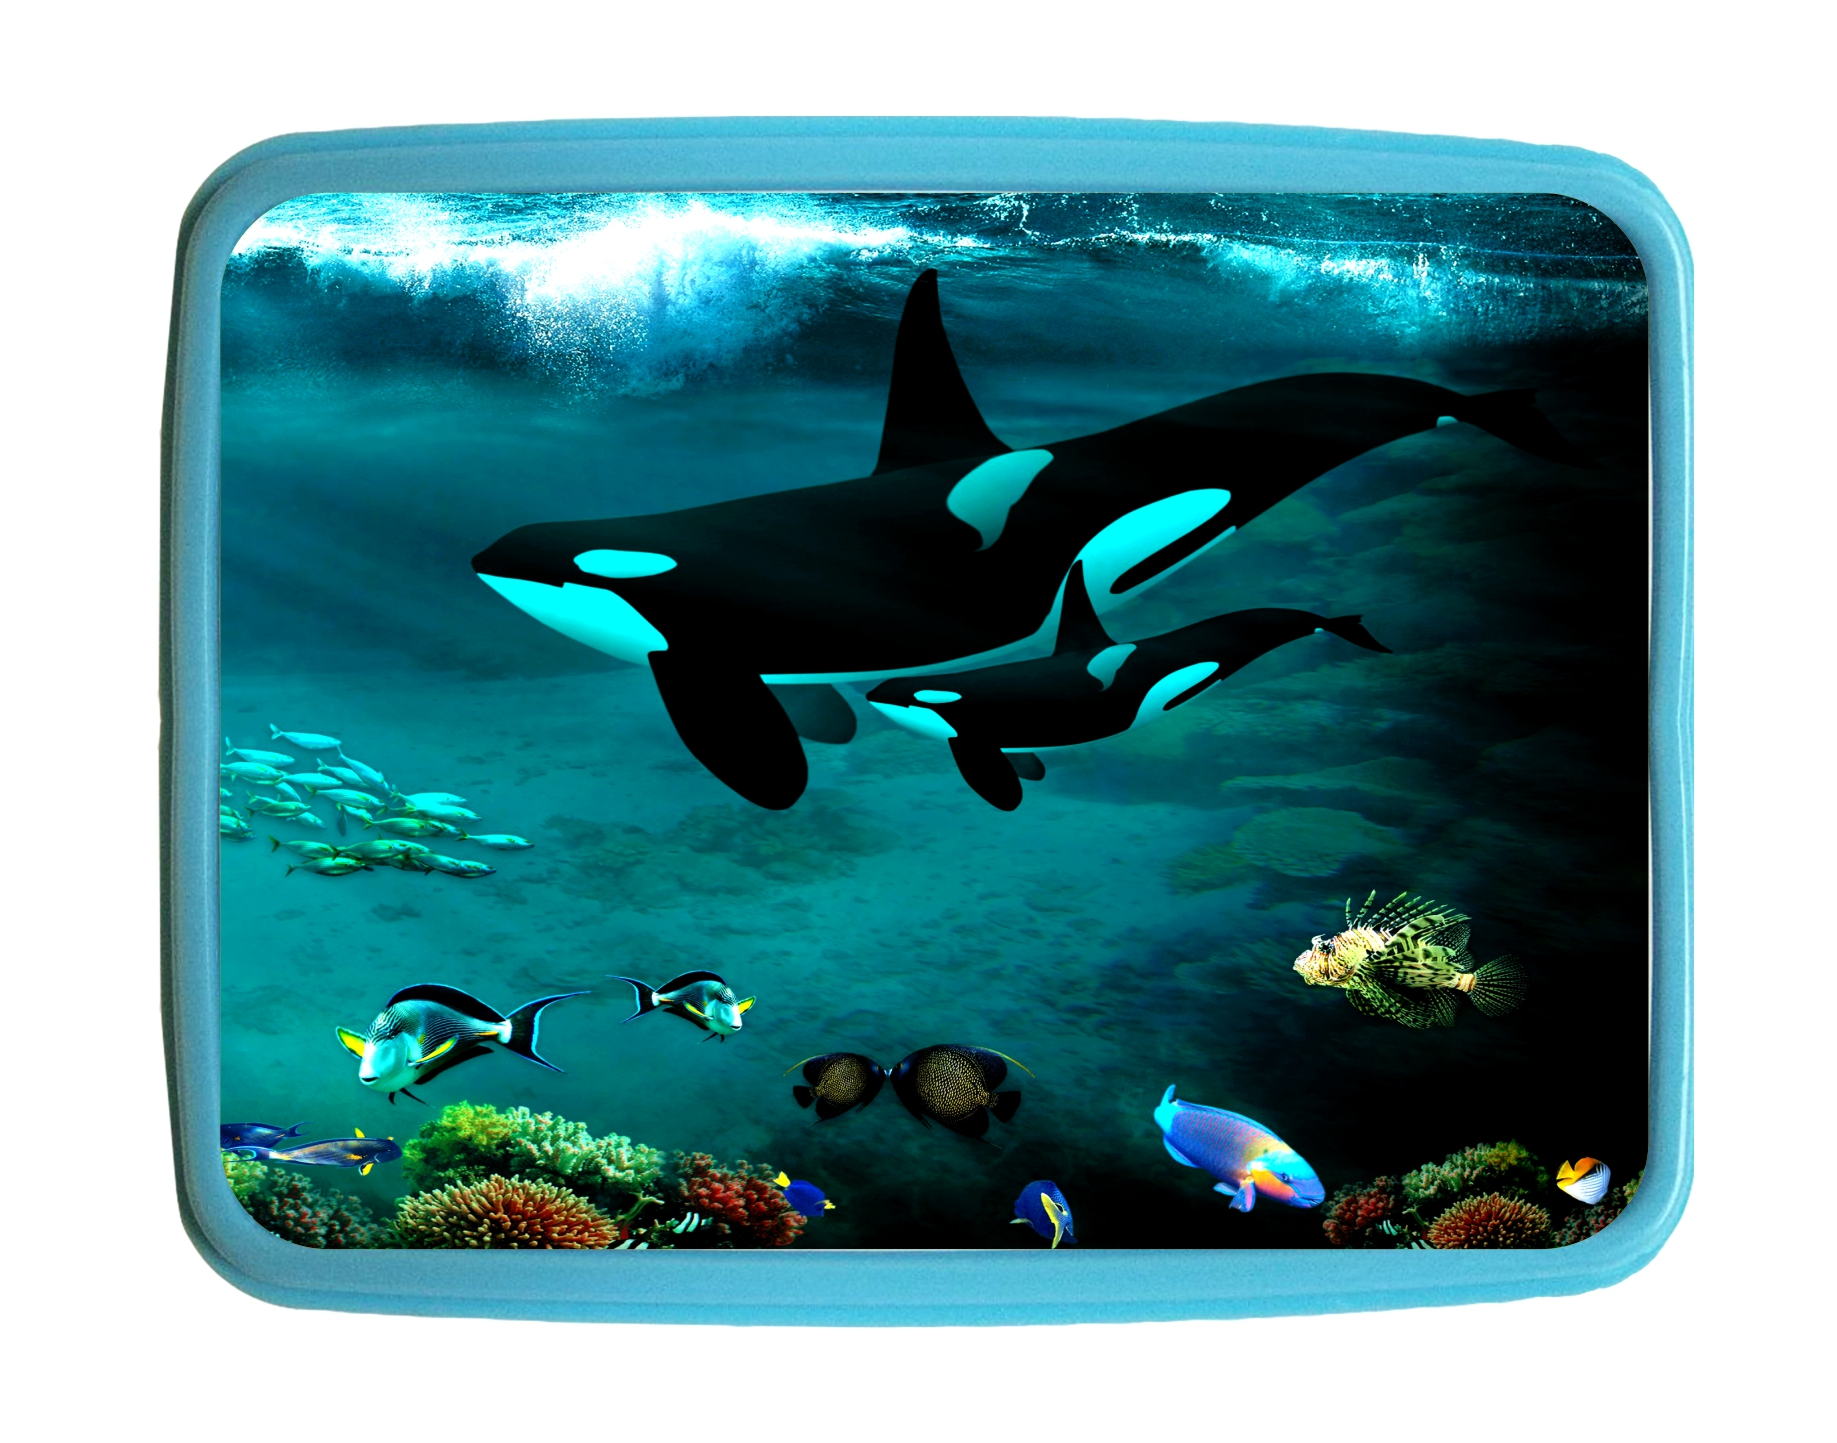 Lunchbox Pets Orca Whales Undersea Kids Bento Lunch Box With 3 Compartment Food Container Walmart Com Walmart Com